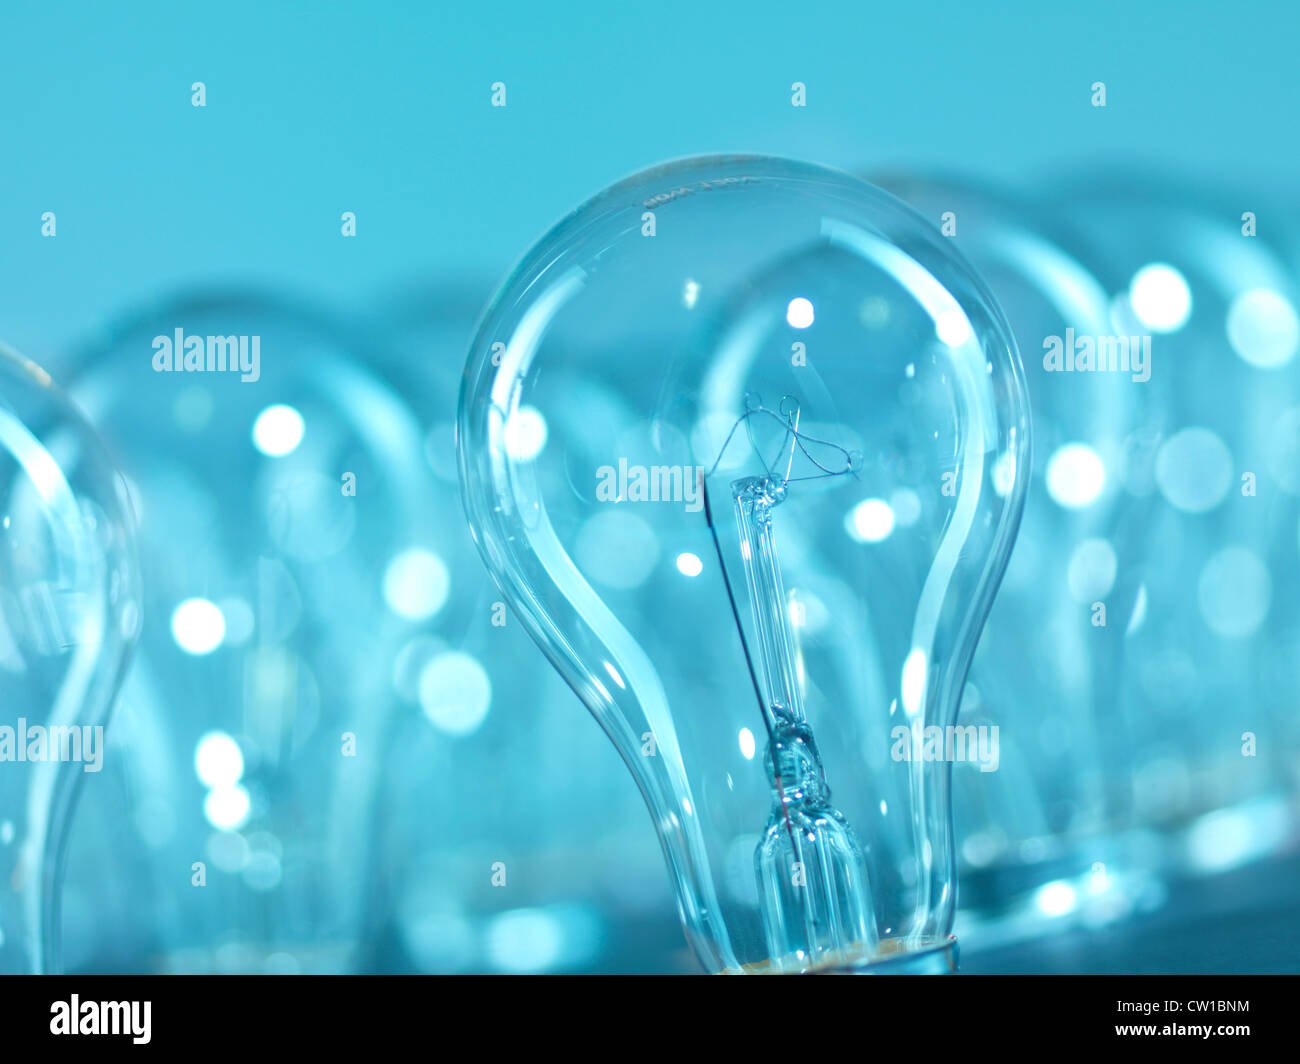 Incandescent tungsten light bulbs abstract blue background - Stock Image